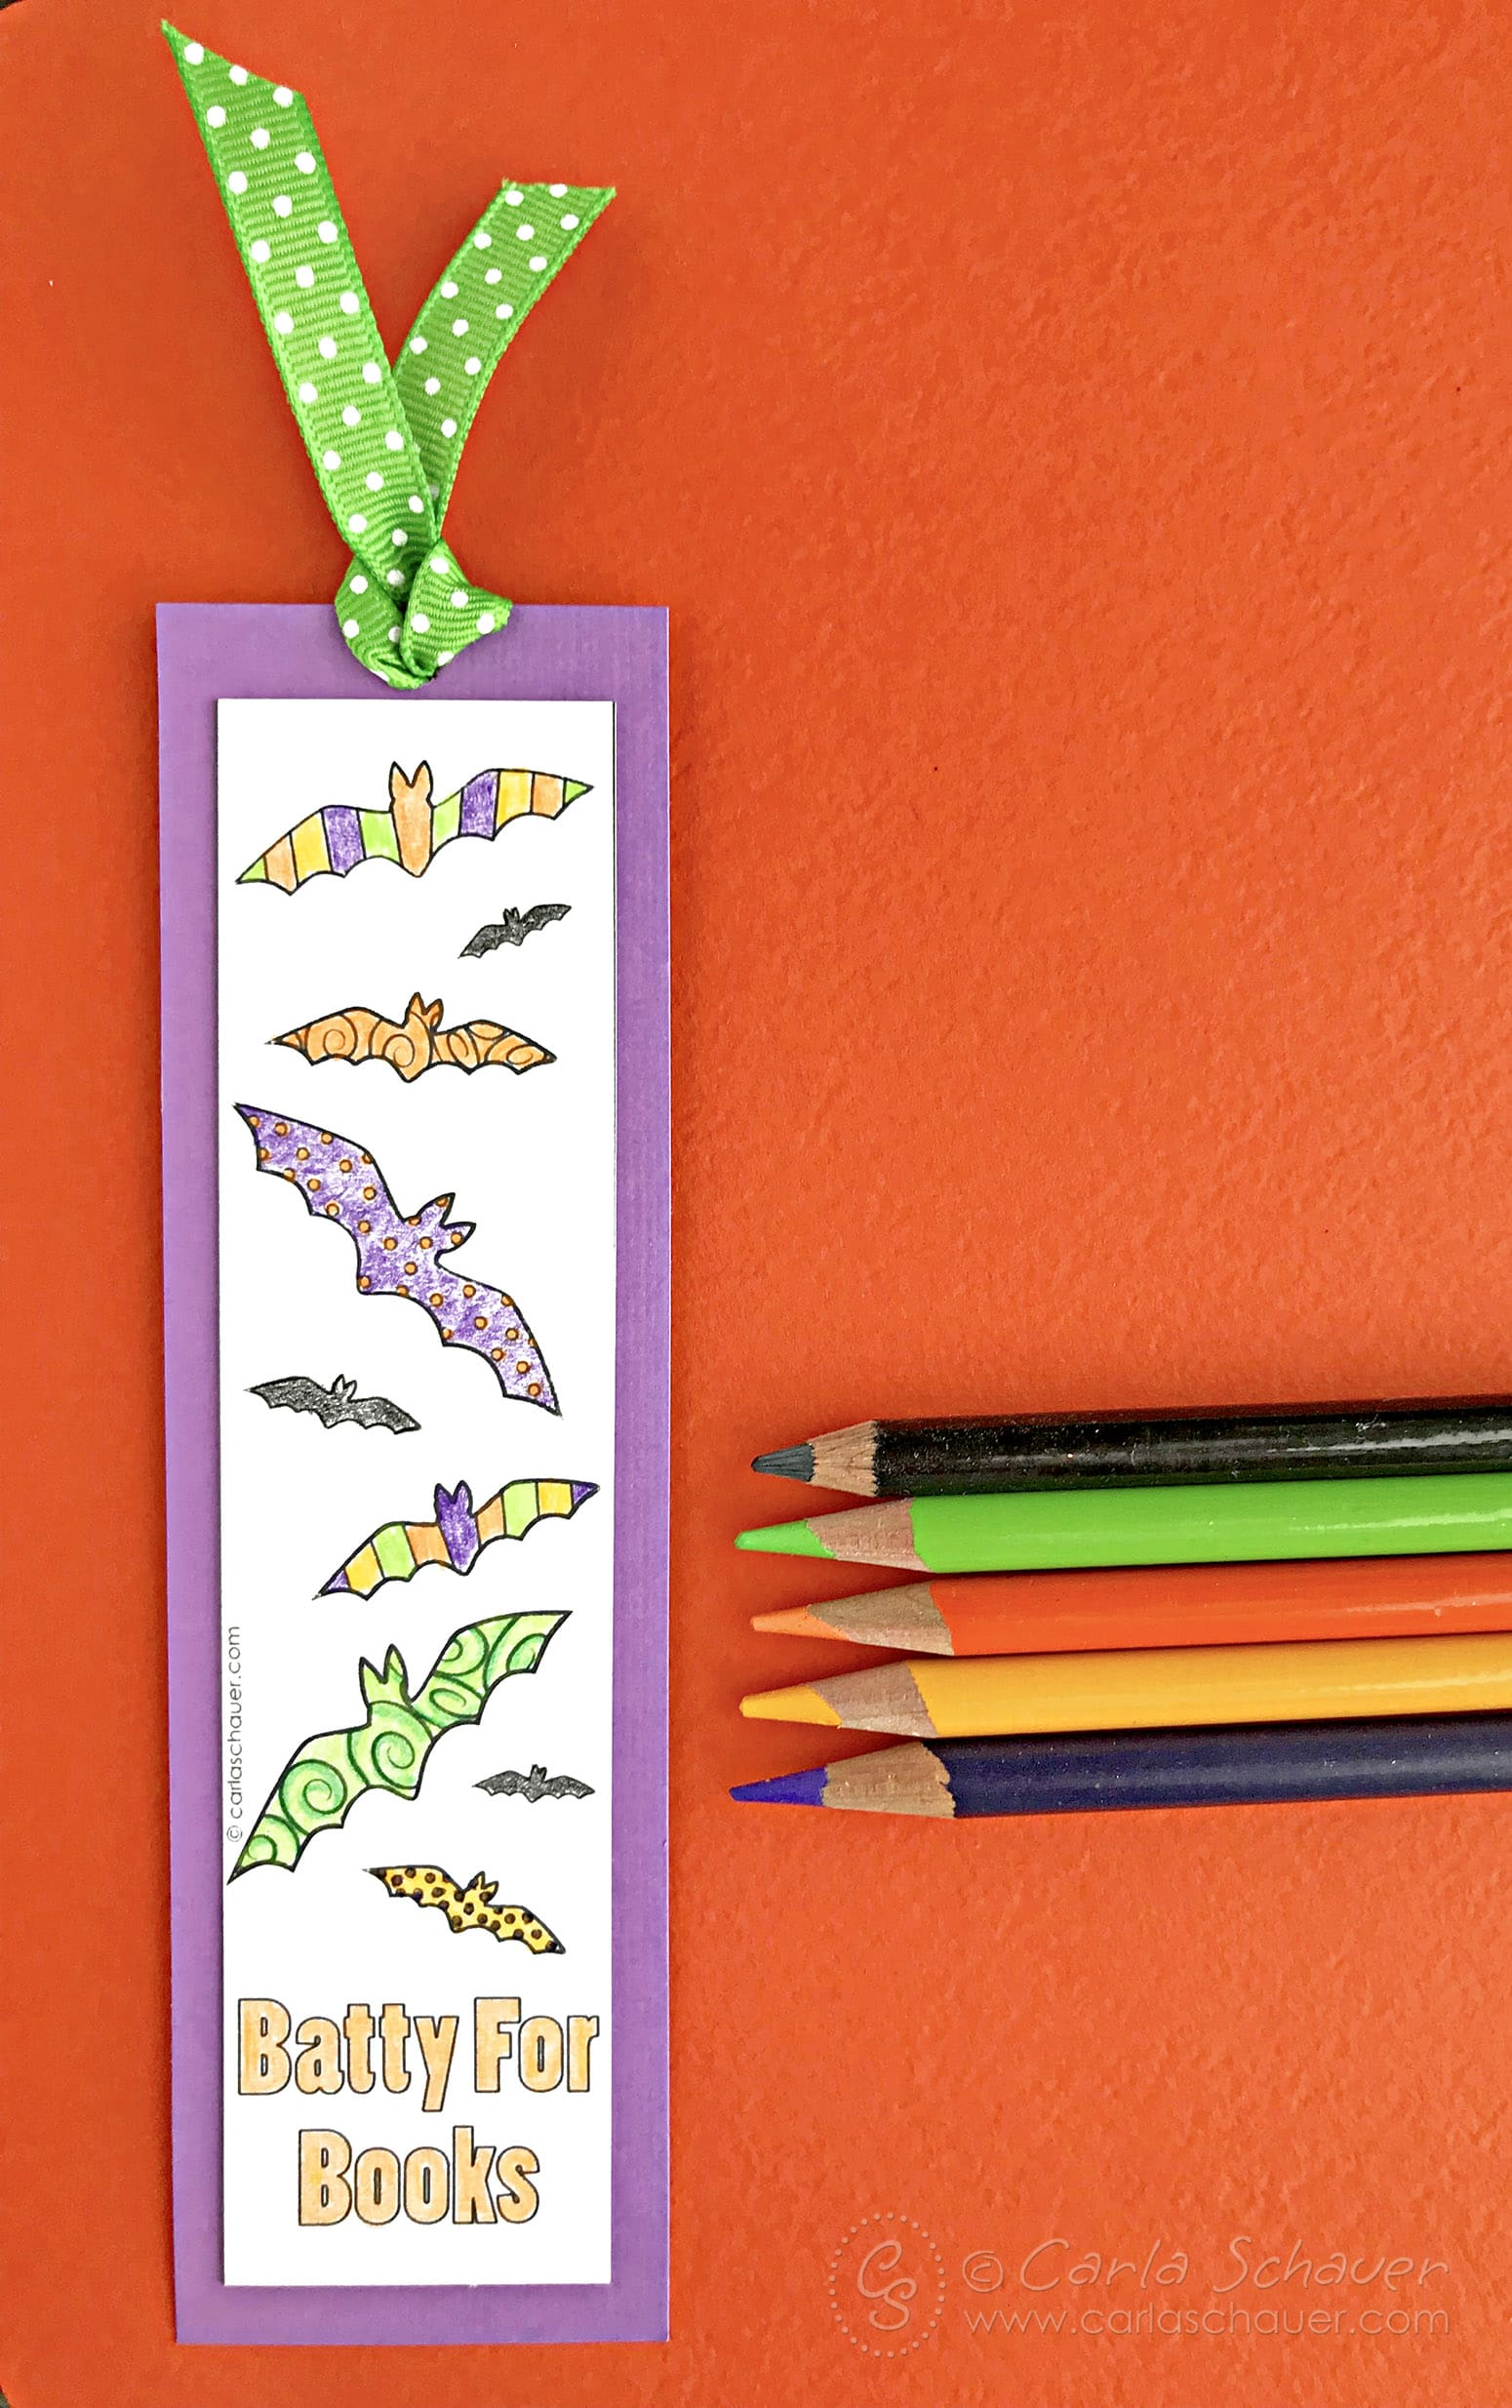 Colored bat bookmark with green ribbon on orange background with colored pencils